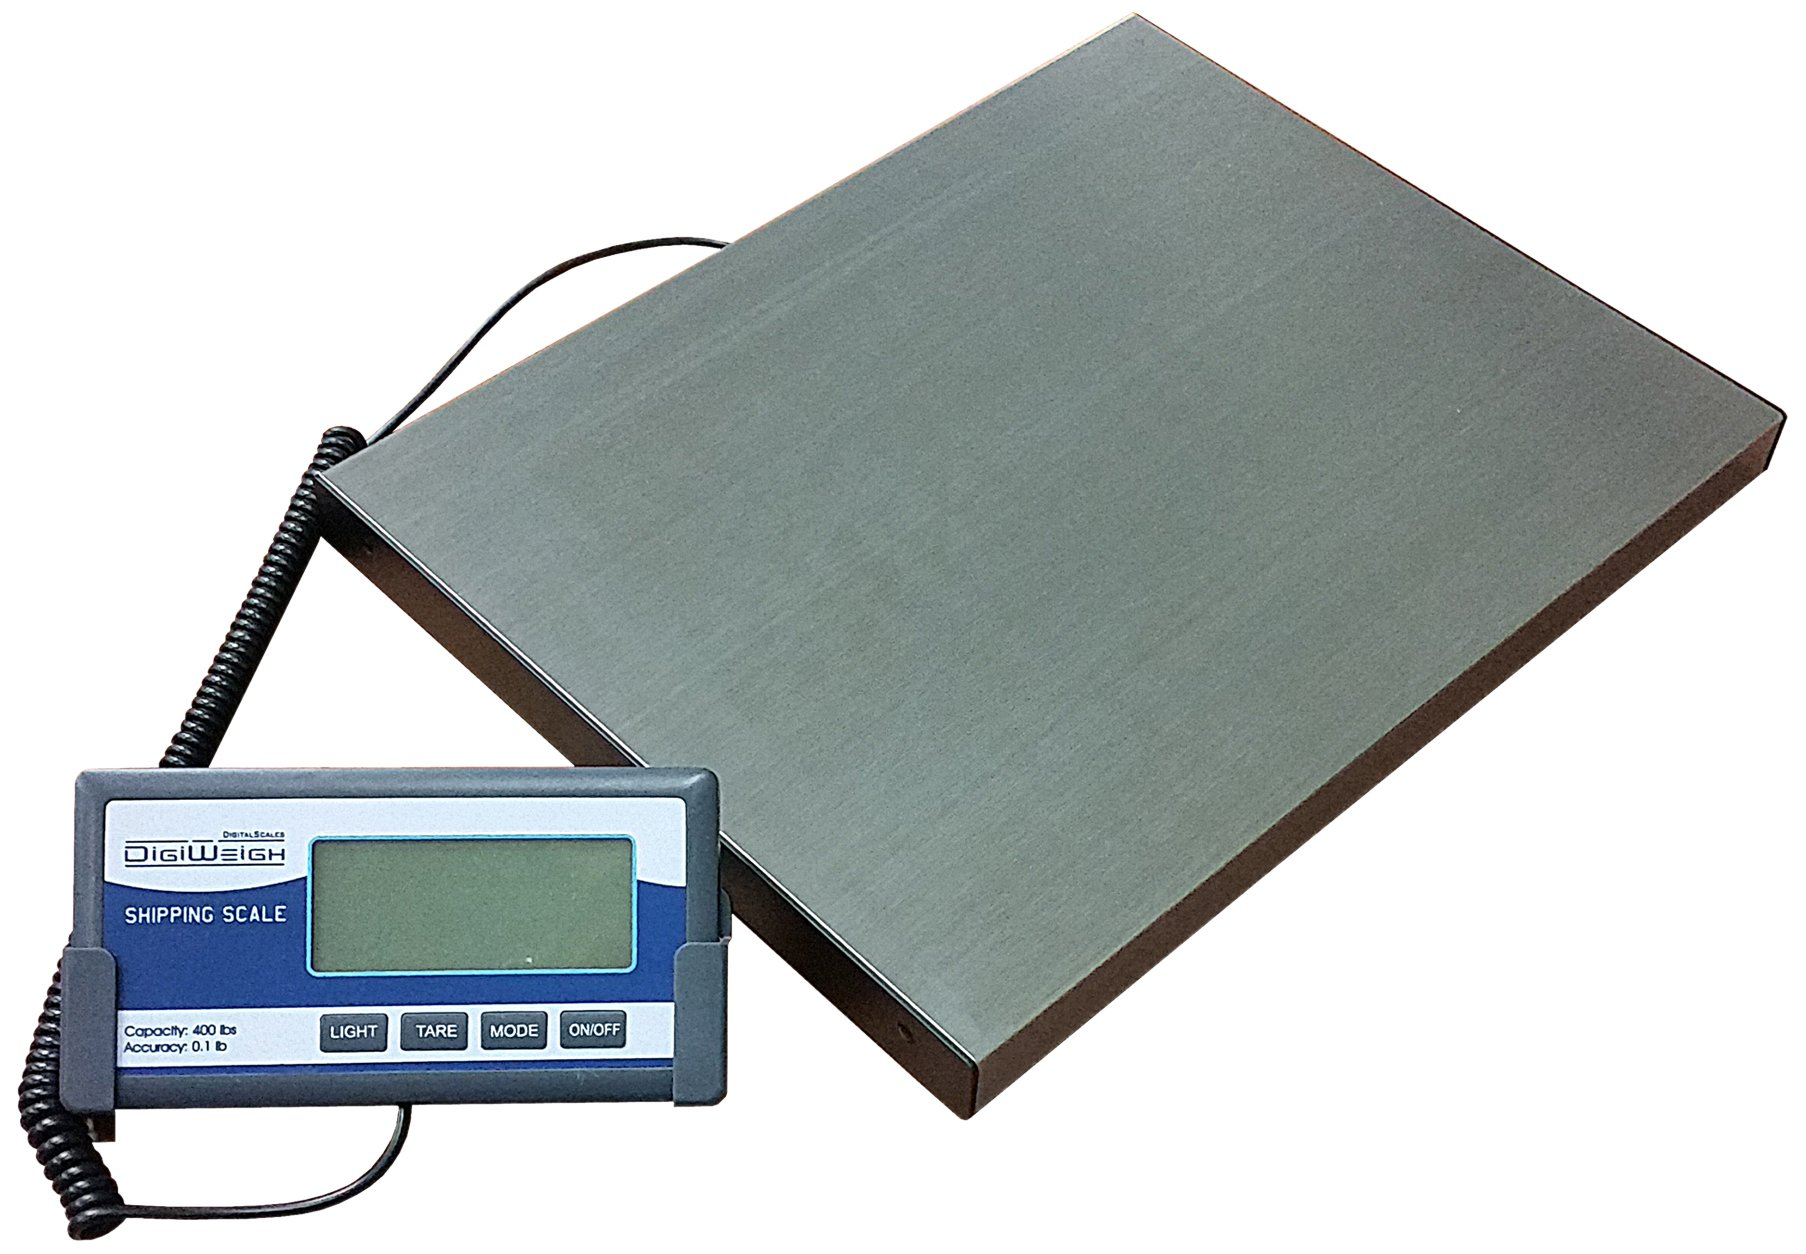 DigiWeigh 400 Lb. Shipping Scale (DW-64)